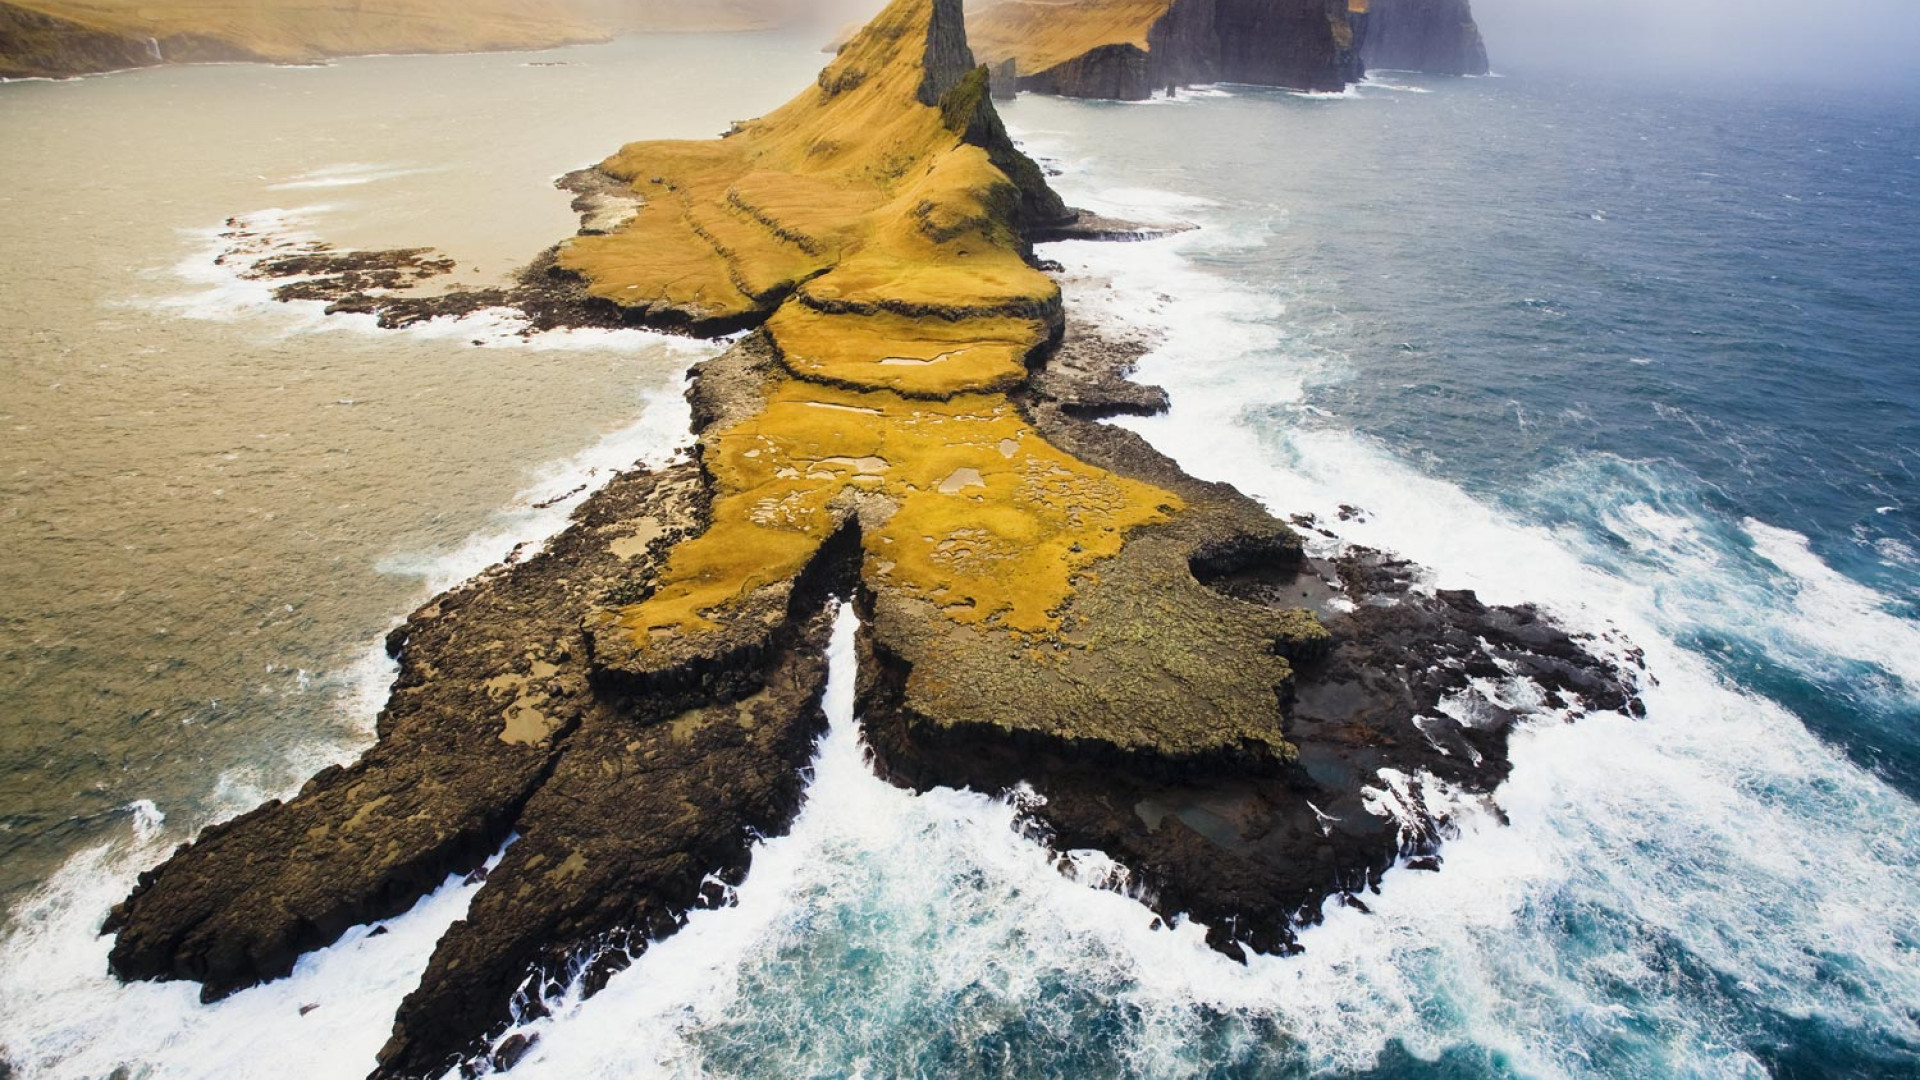 Dramatic aerial photo of landscape in the Faroe Islands